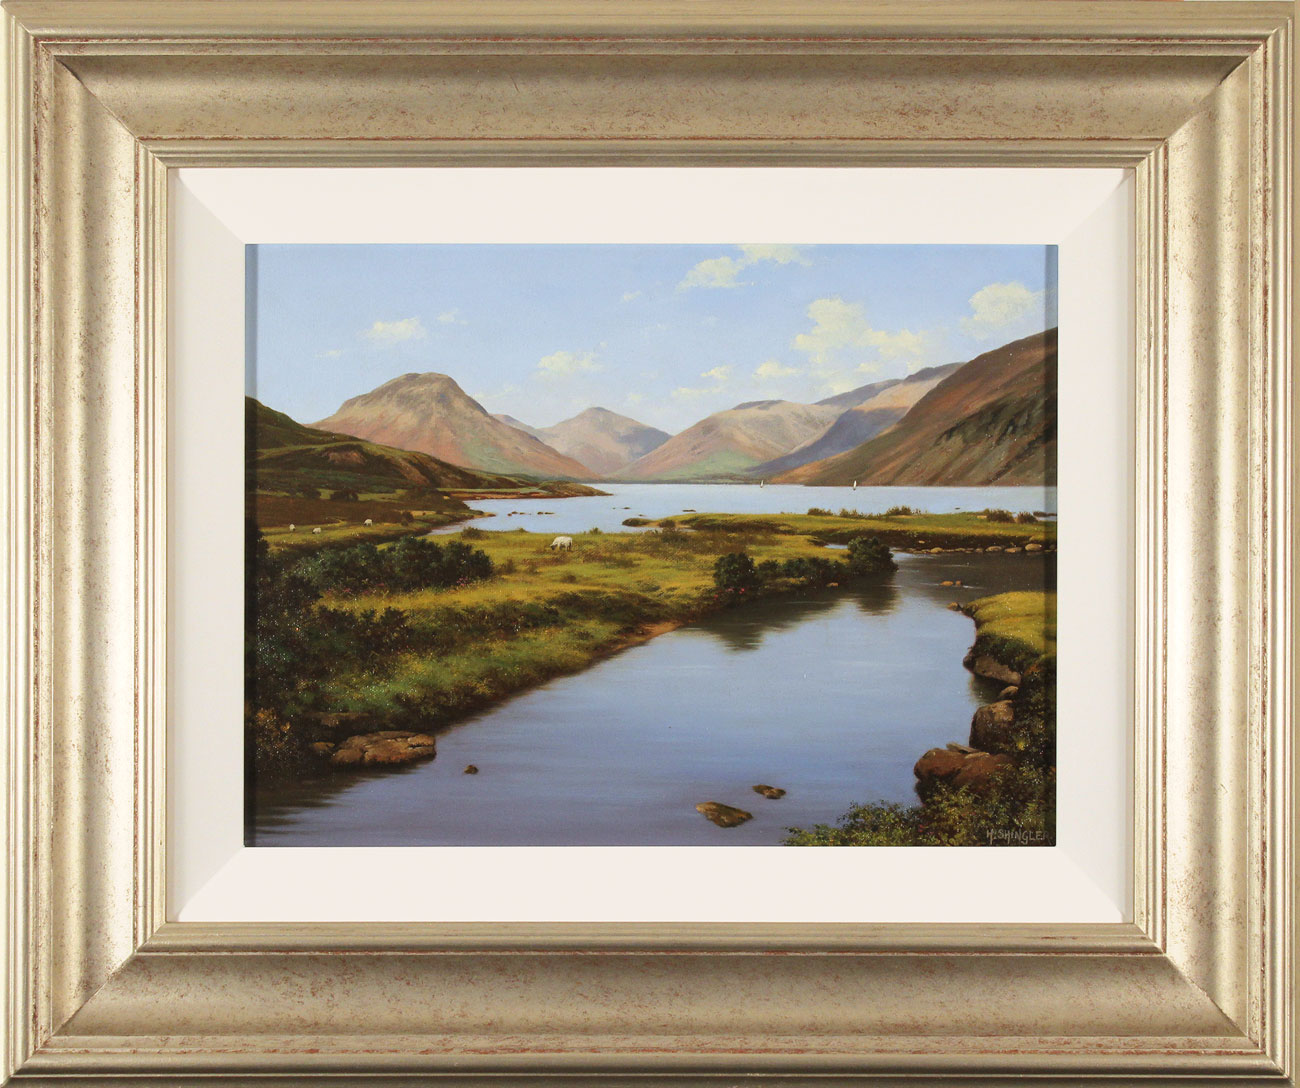 Howard Shingler, Original oil painting on canvas, Scafell and Great Gable, Wastwater, click to enlarge